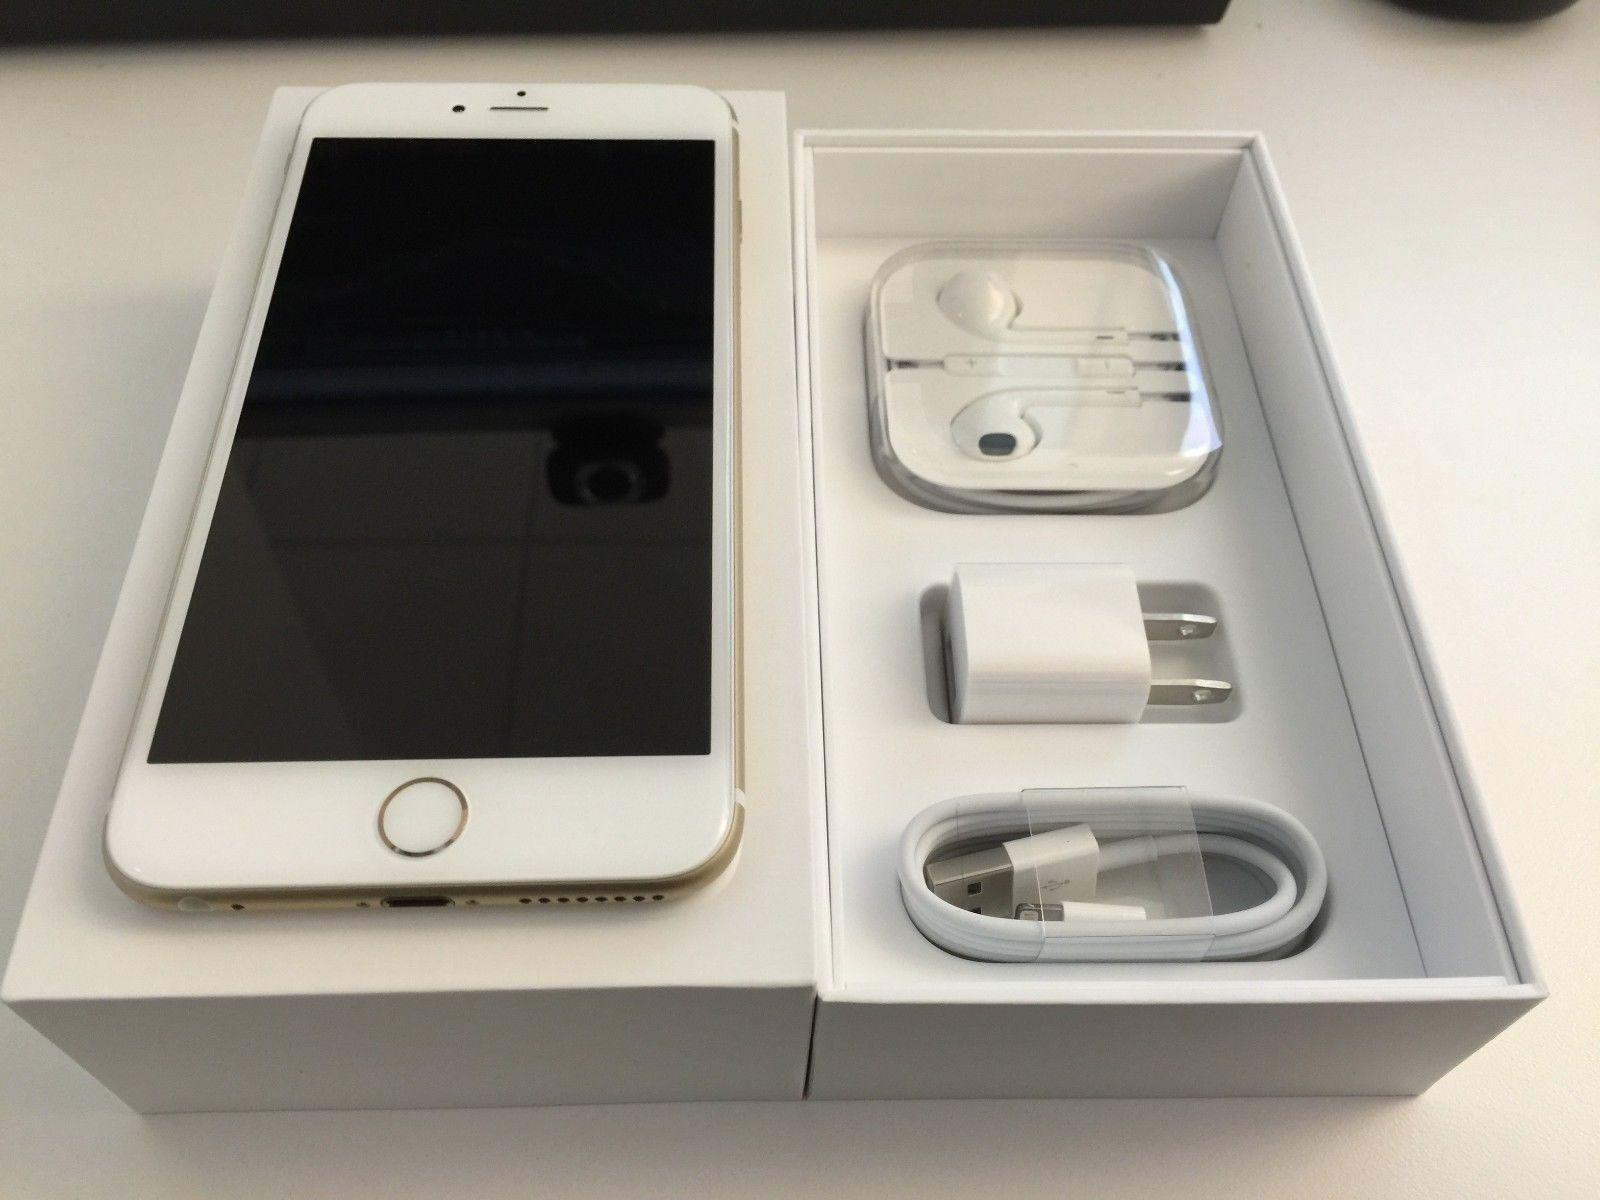 Apple Iphone 7 32gb Or 128gb Smartphone Gsm Unlocked No Contract 128 Gb Rose Gold Required